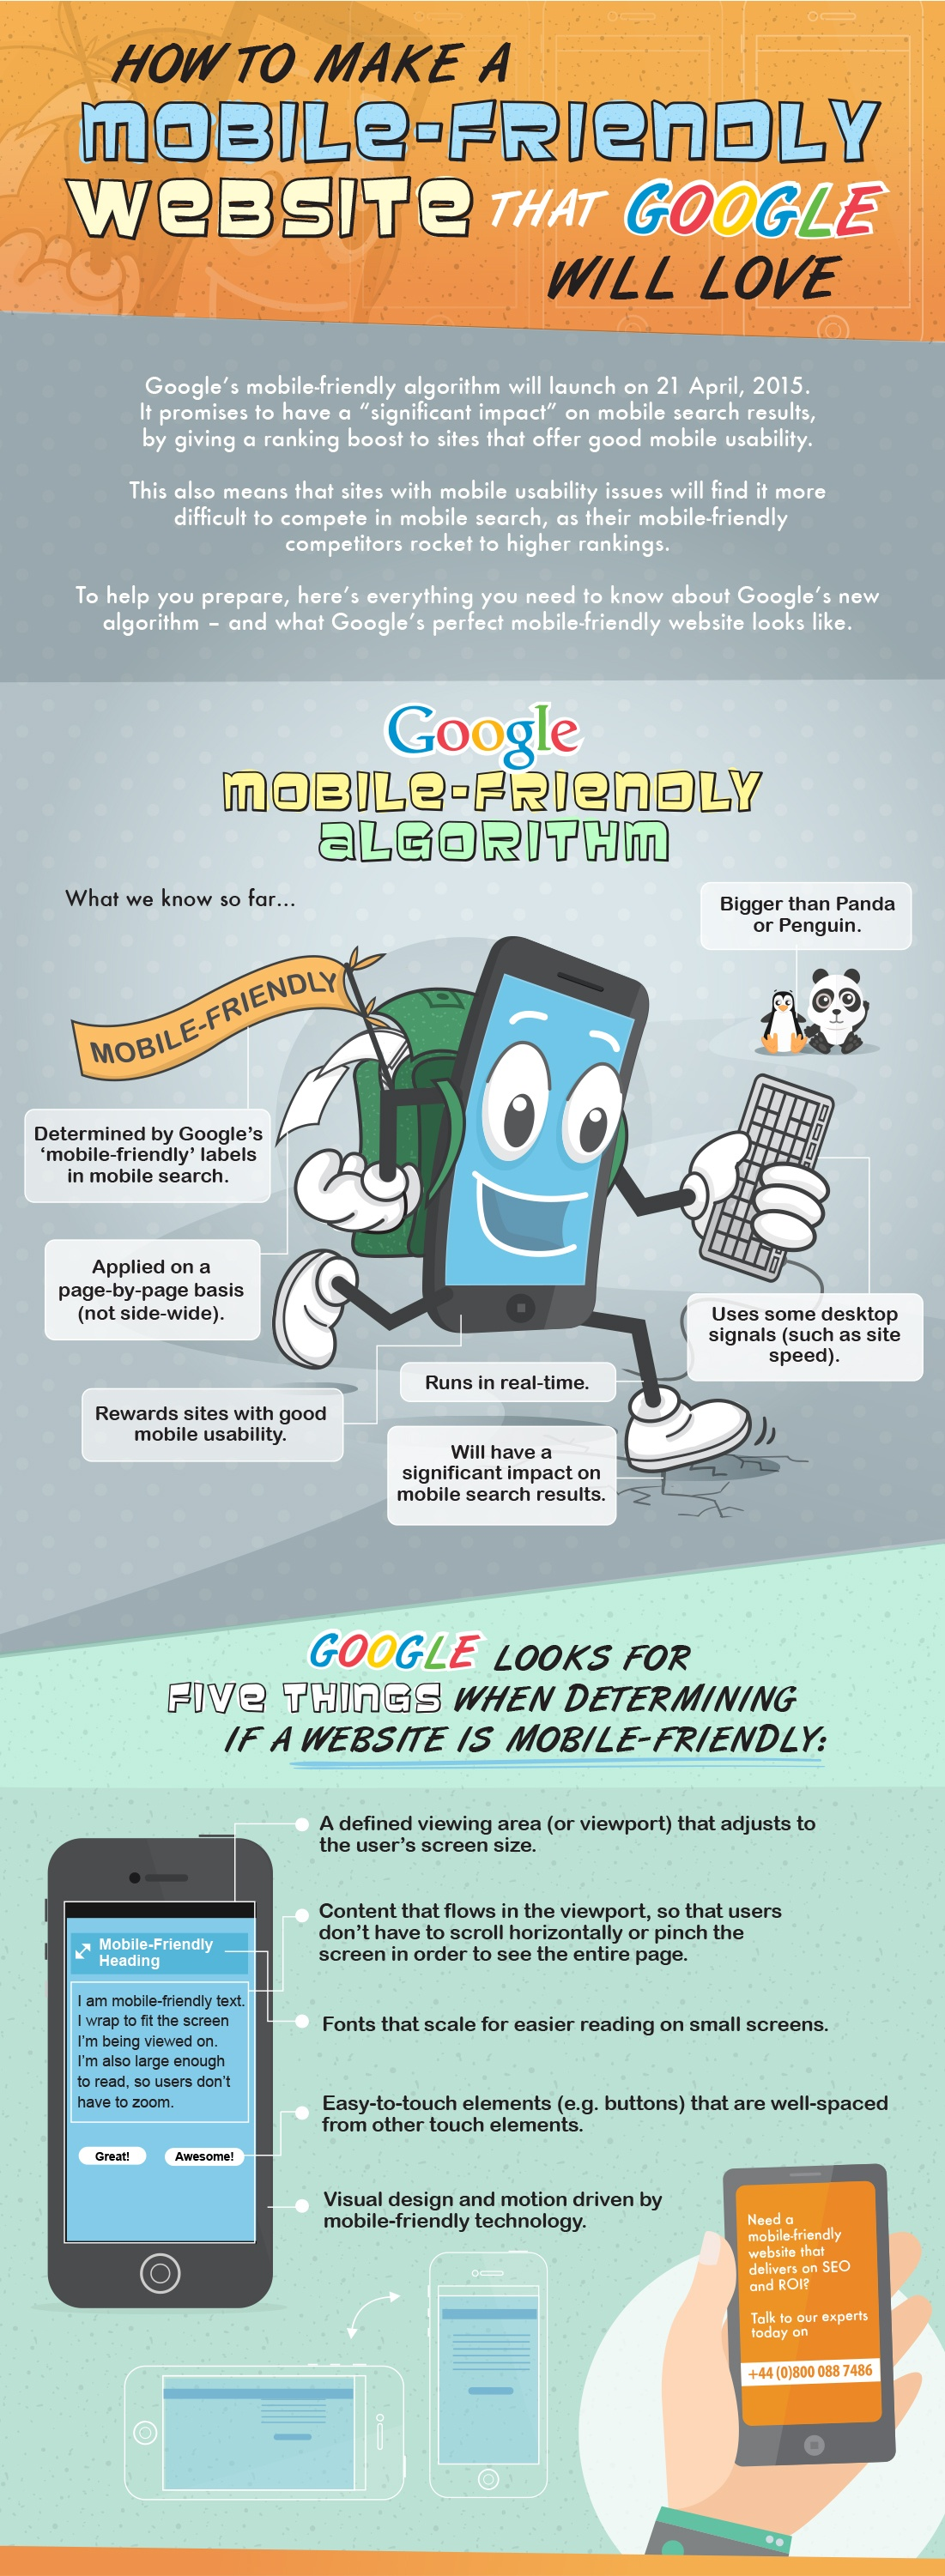 How to Make a Mobile-Friendly Website That Google Will Love [Infographic]